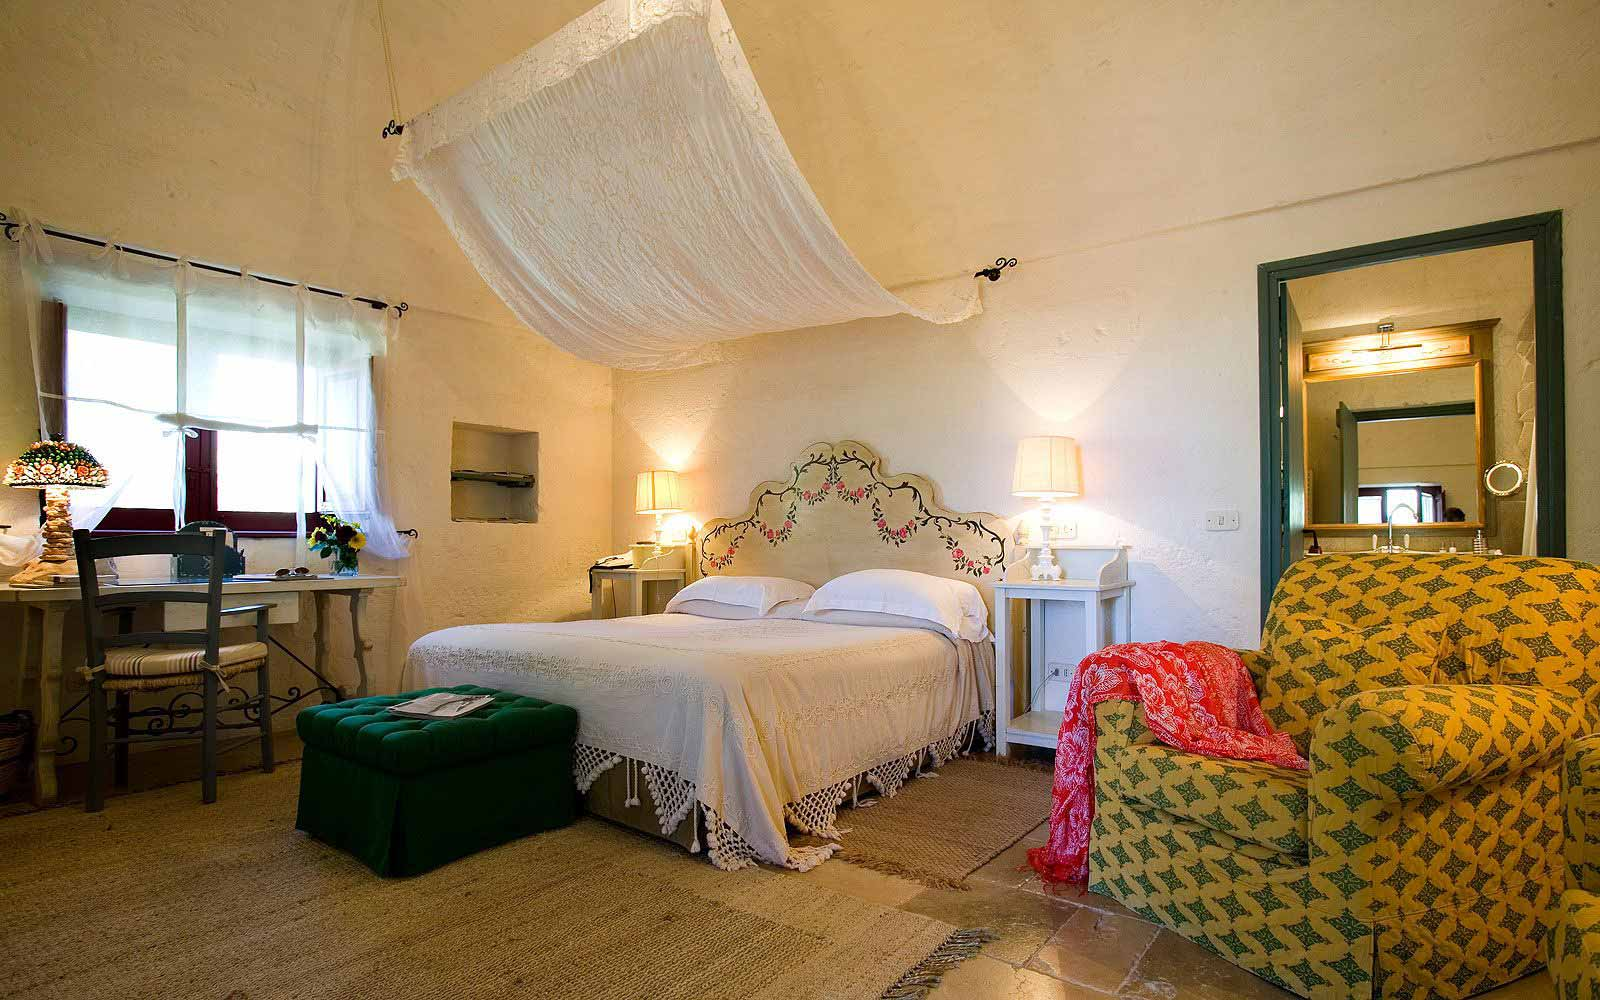 Deluxe room at Masseria Torre Coccaro